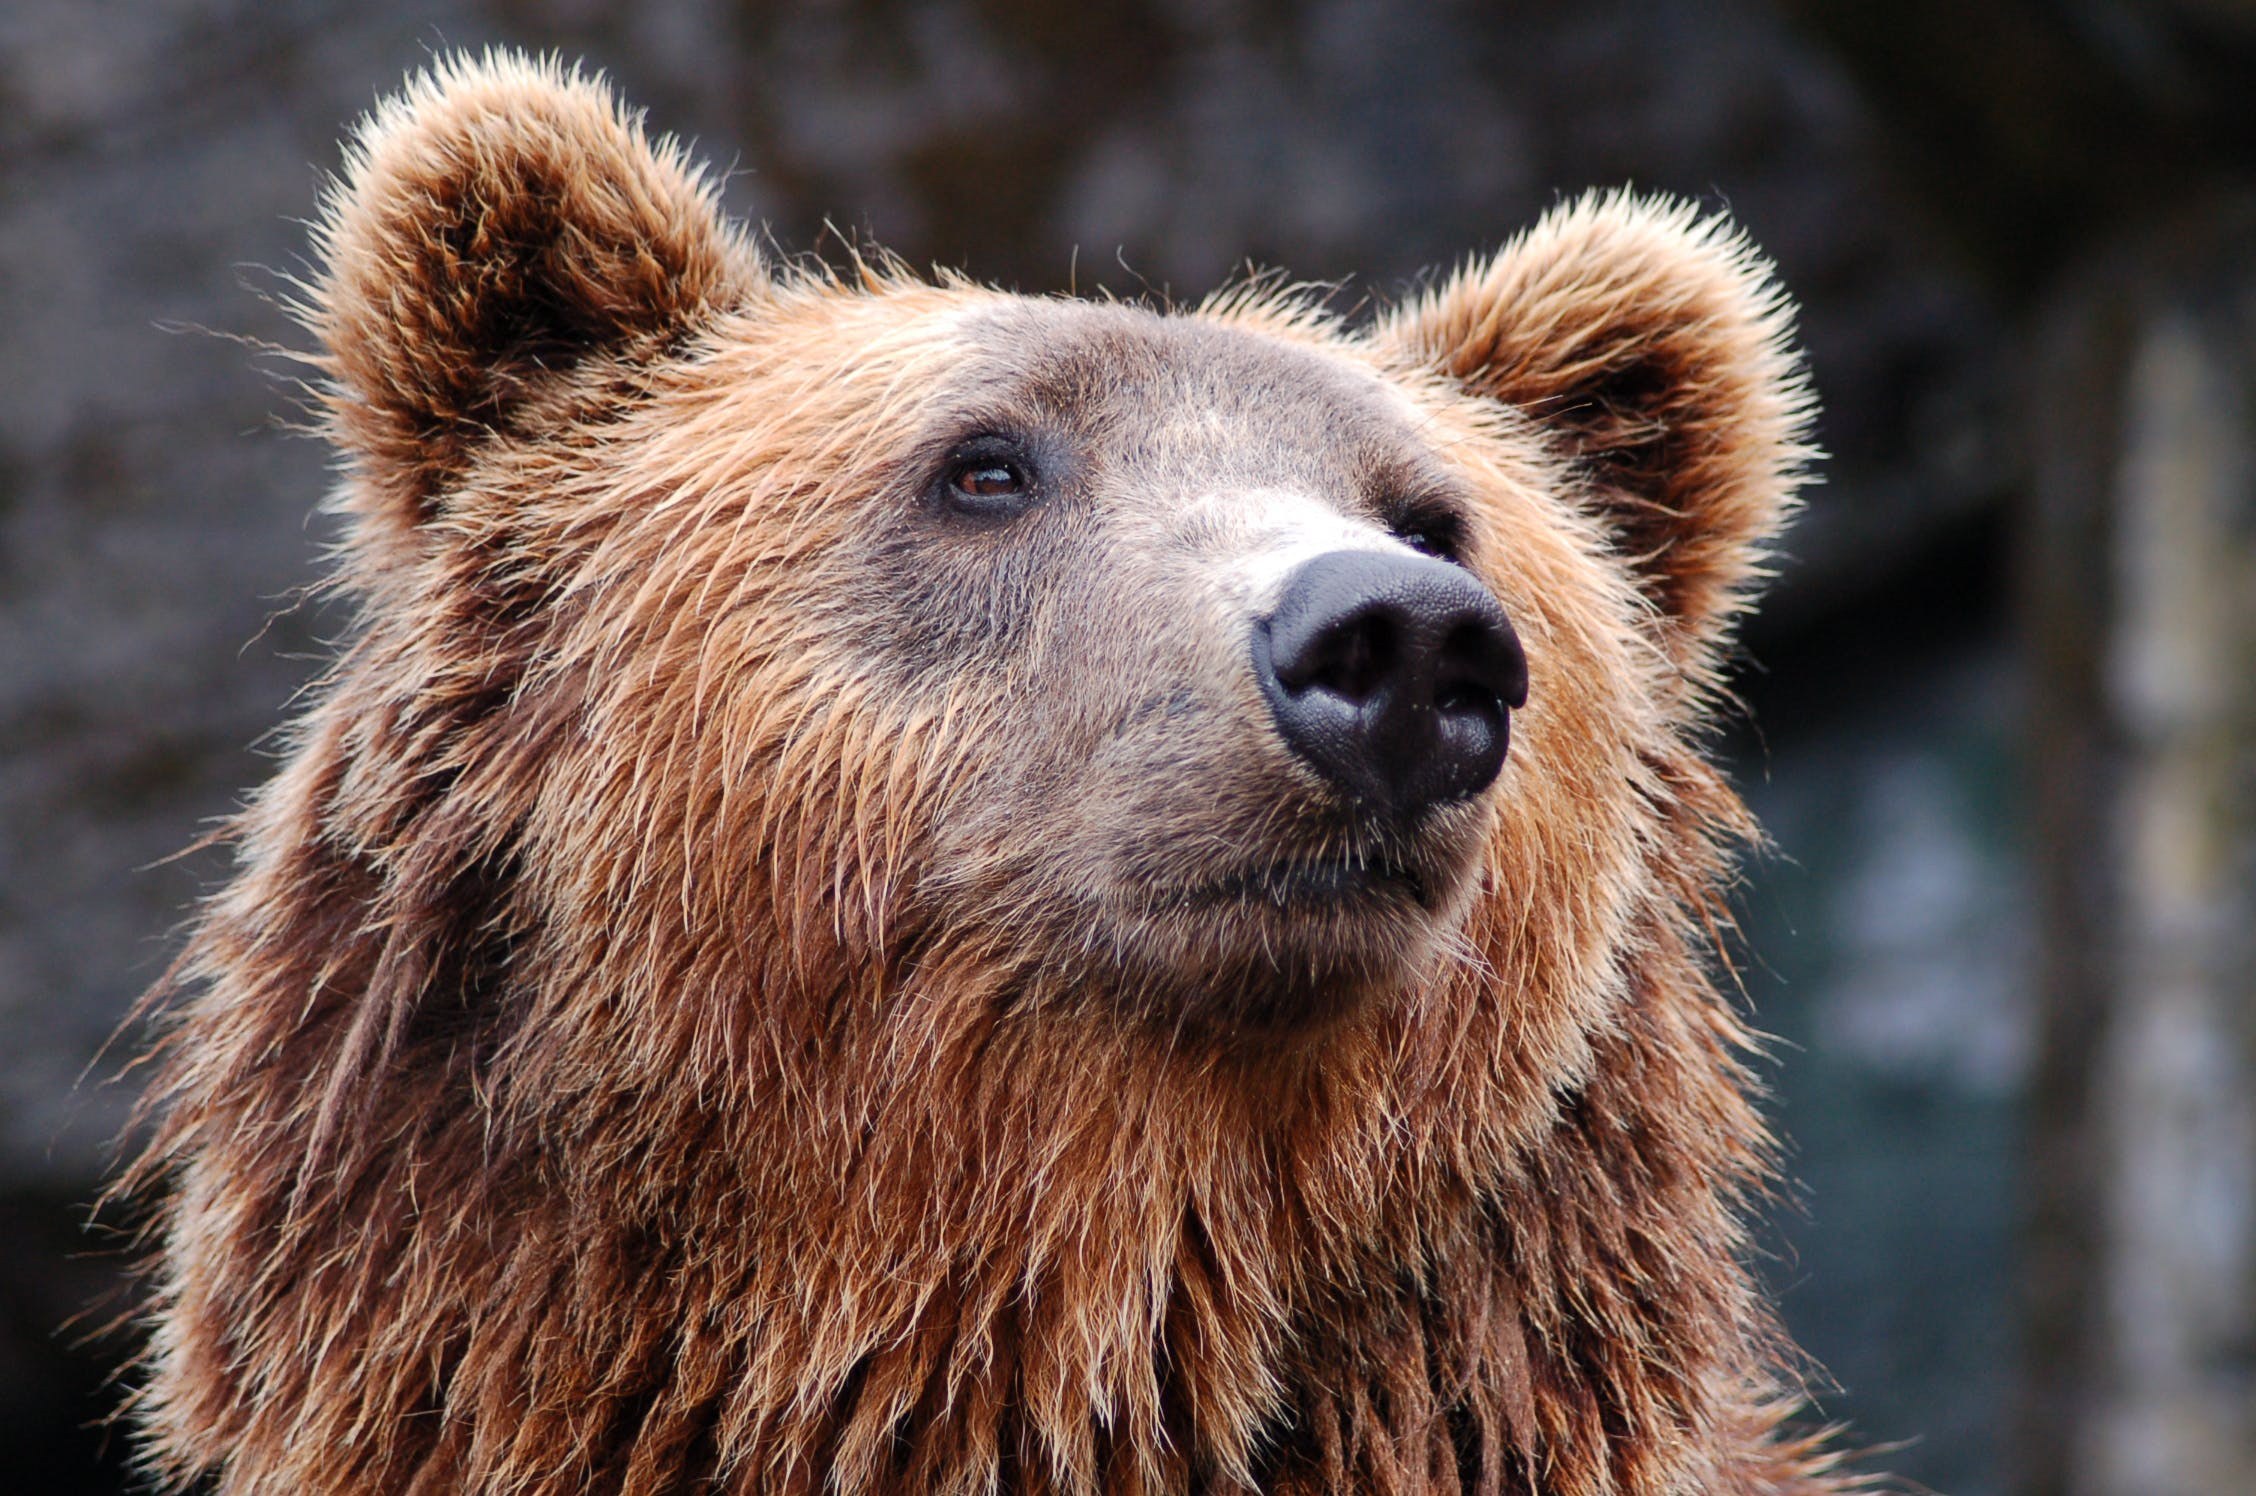 Free stock photo of animal, zoo, bear, brown bear